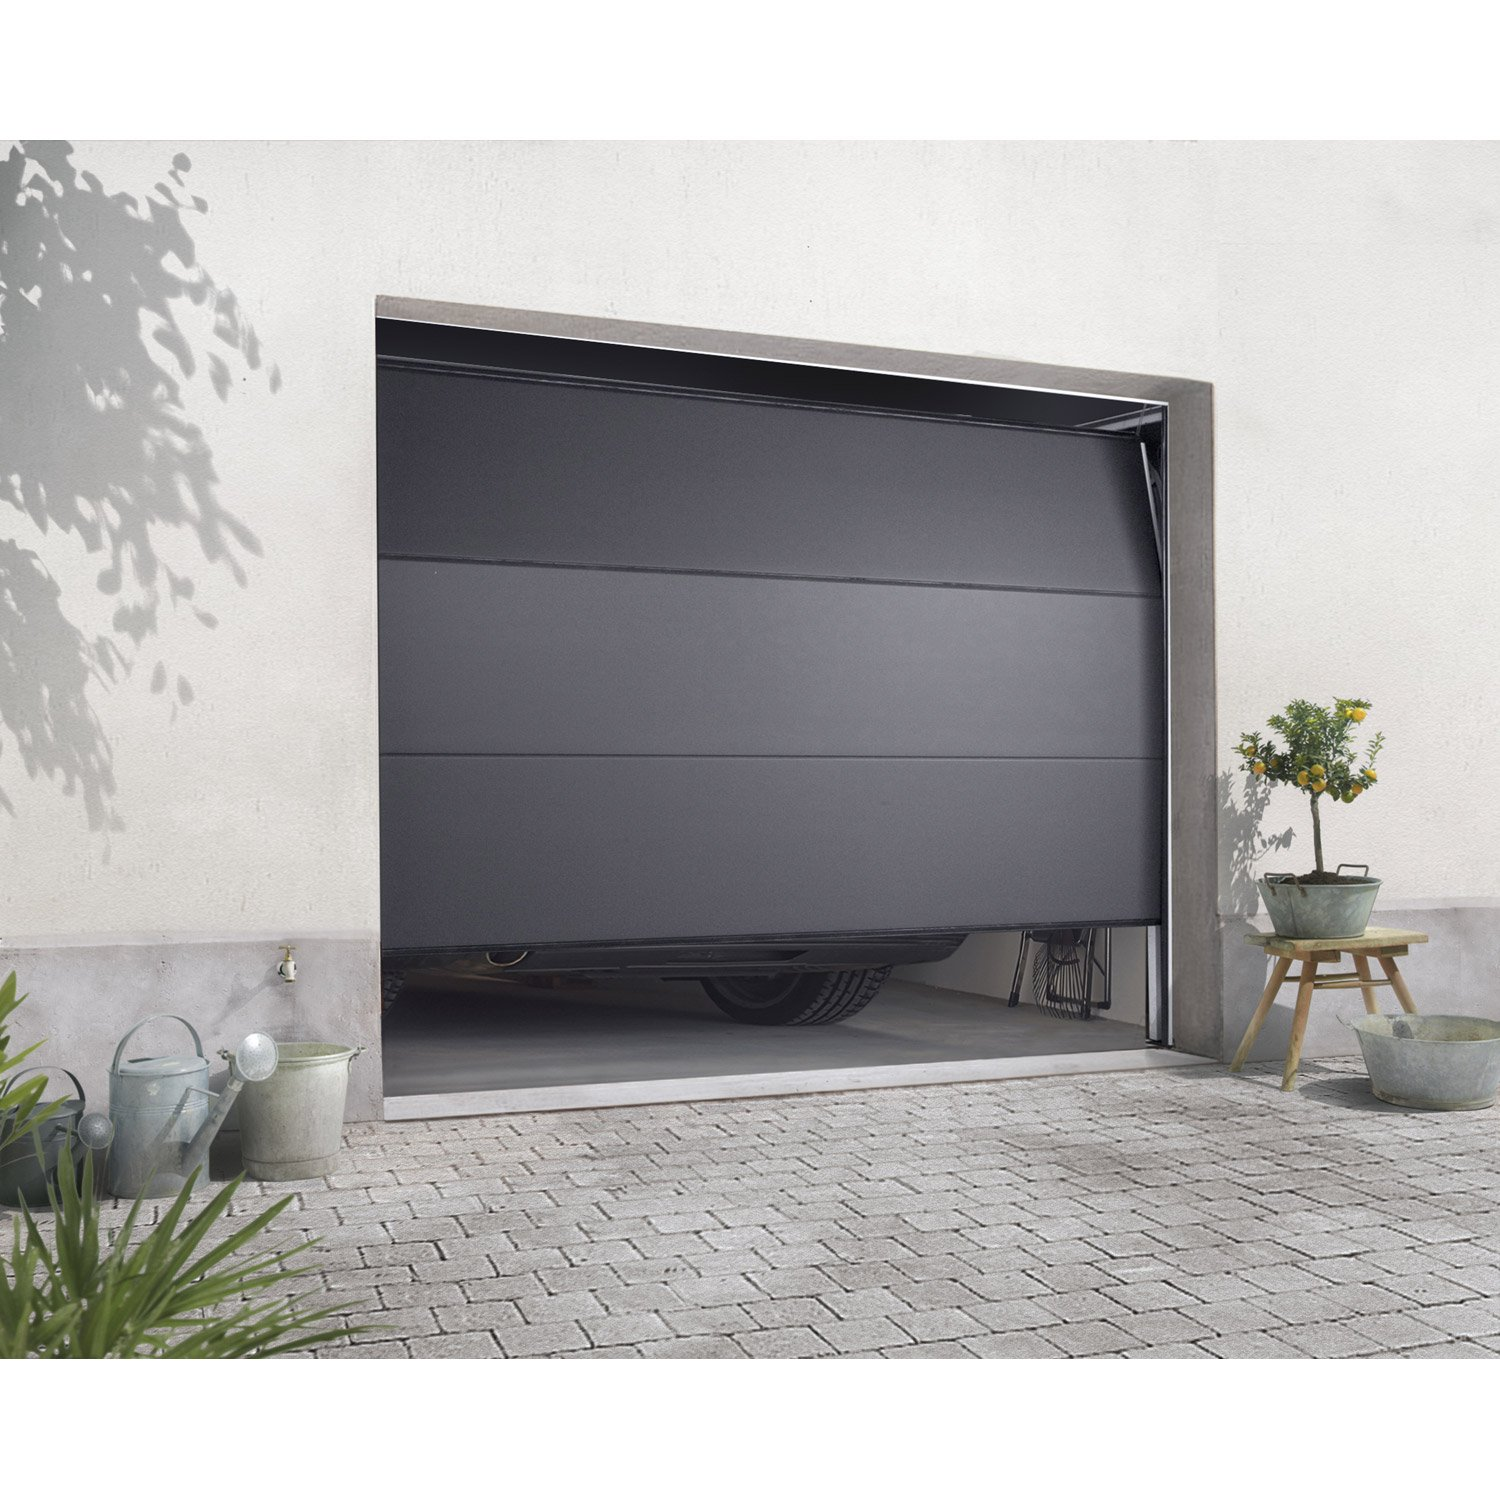 Porte de garage sectionnelle 300 x 215 isolation id es for Porte sectionnelle garage 3m